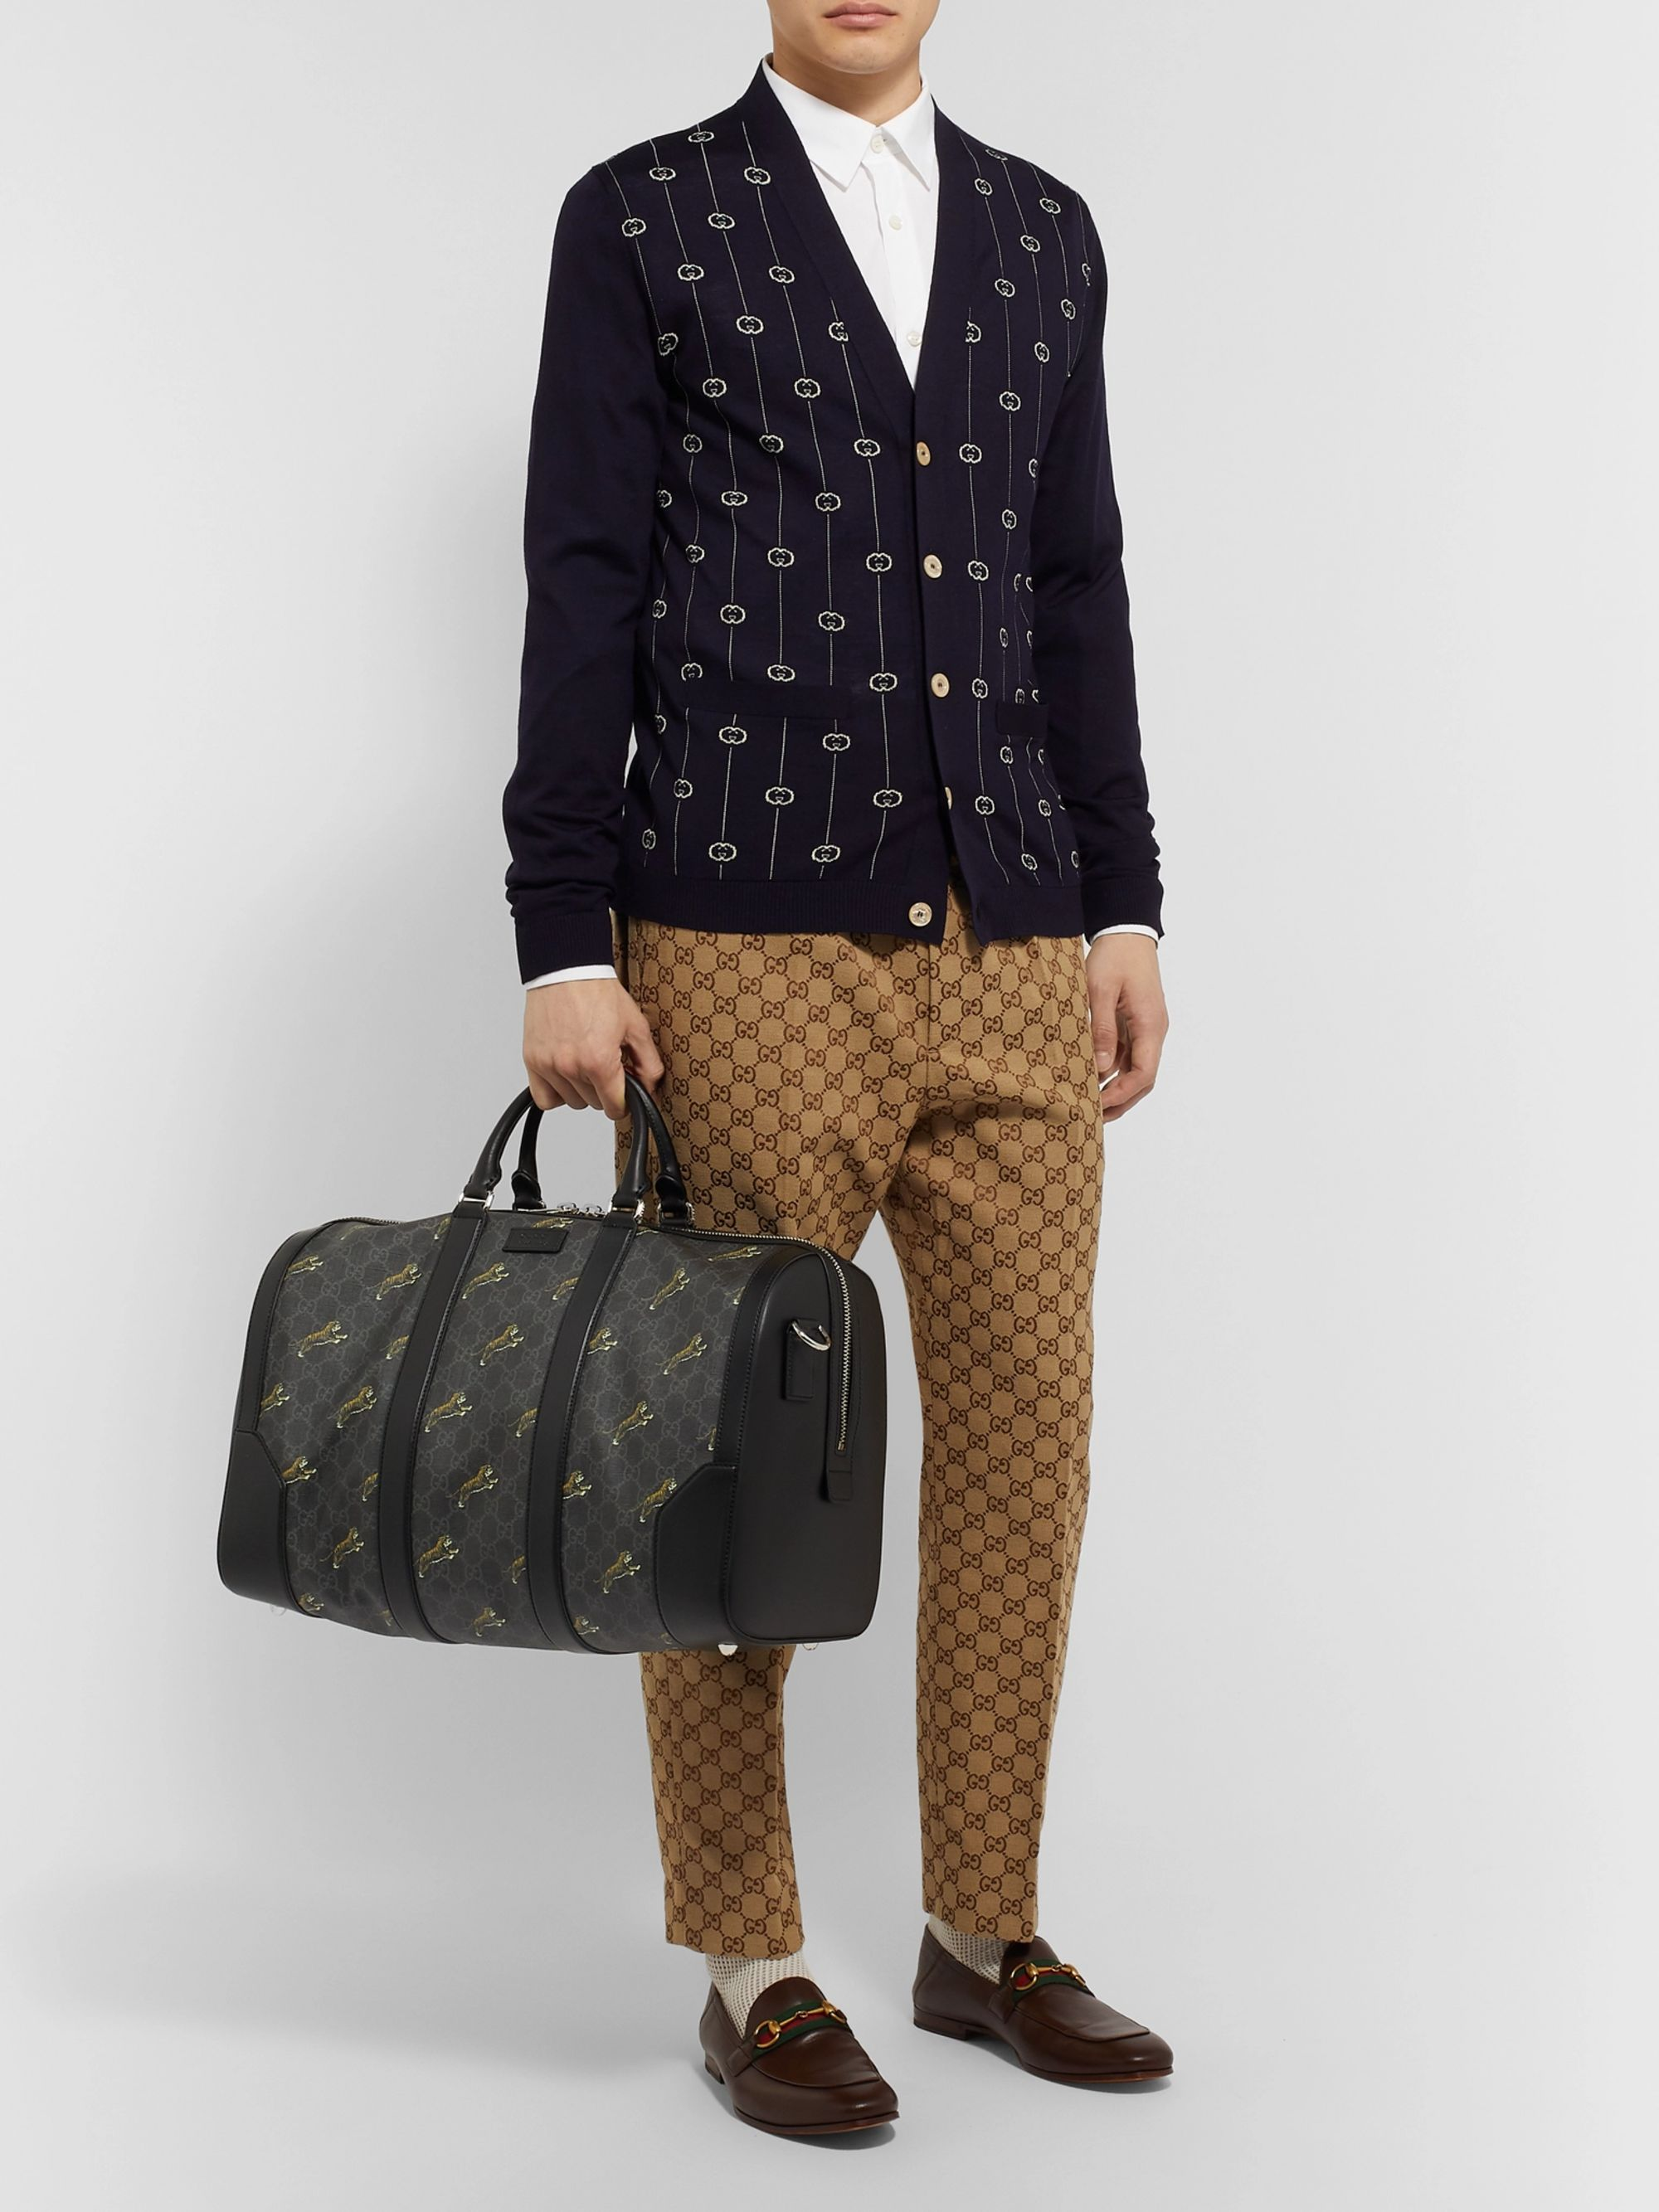 Gucci Leather-Trimmed Monogrammed Coated-Canvas Holdall